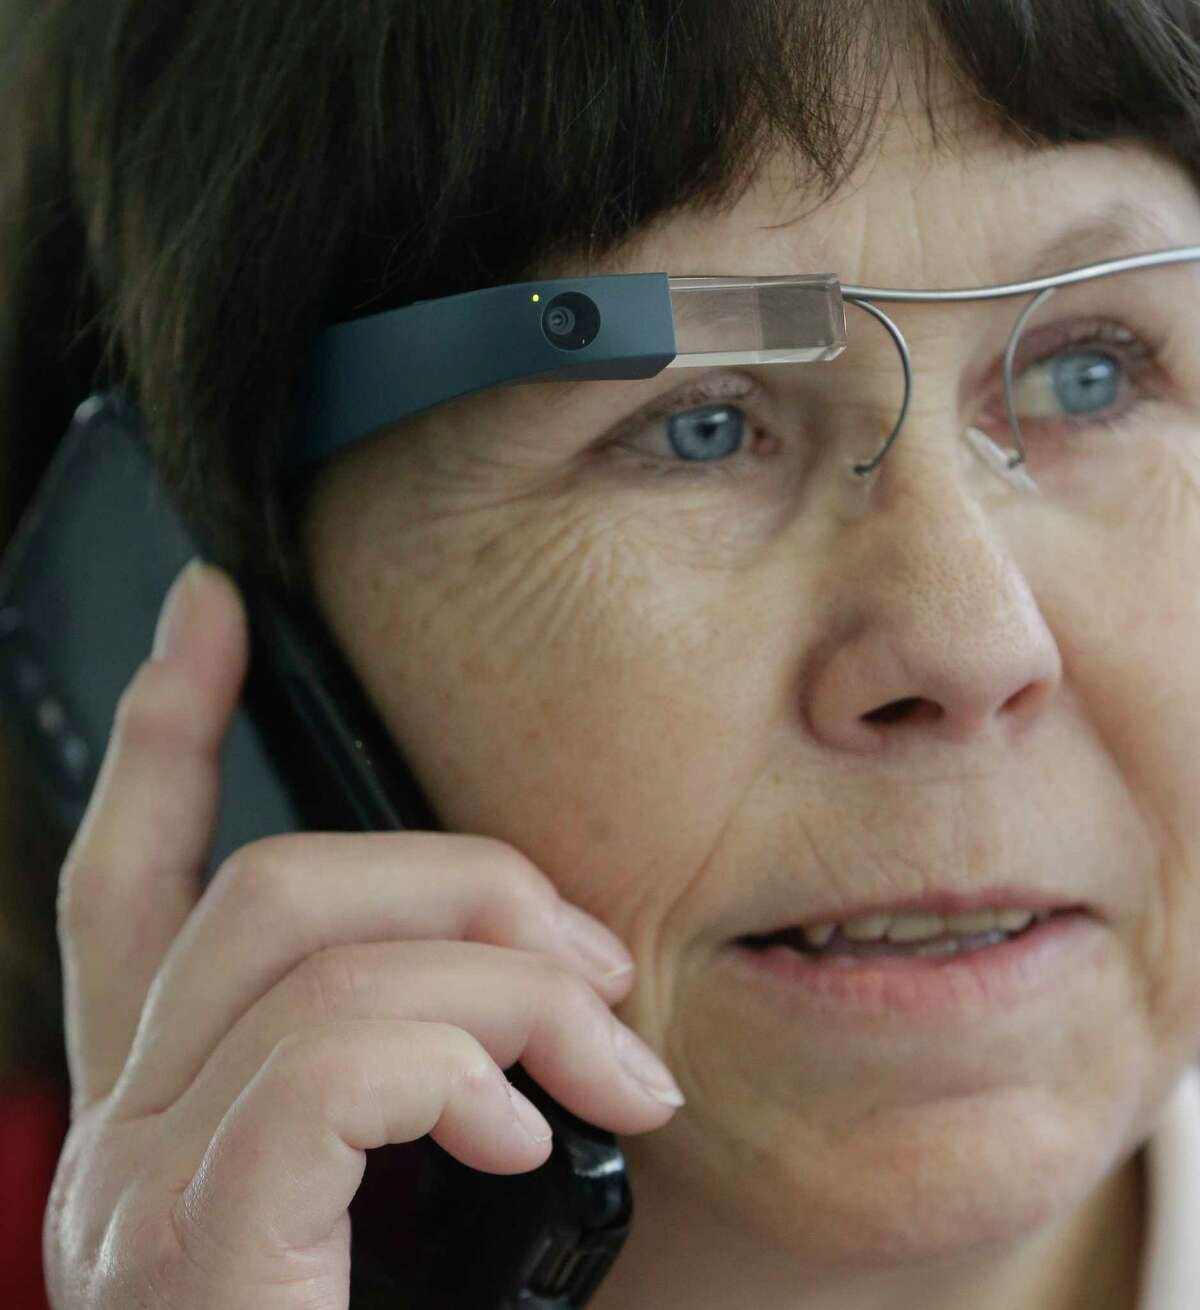 Donna Grahmann of Magnolia with her guide dog, Cruiser, talks to an Aira agent on the phone as she wears smart glasses during a demonstrates the Aira app in Terminal E at Bush Intercontinental Thursday, Feb. 8, 2018, in Houston. ( Melissa Phillip / Houston Chronicle )